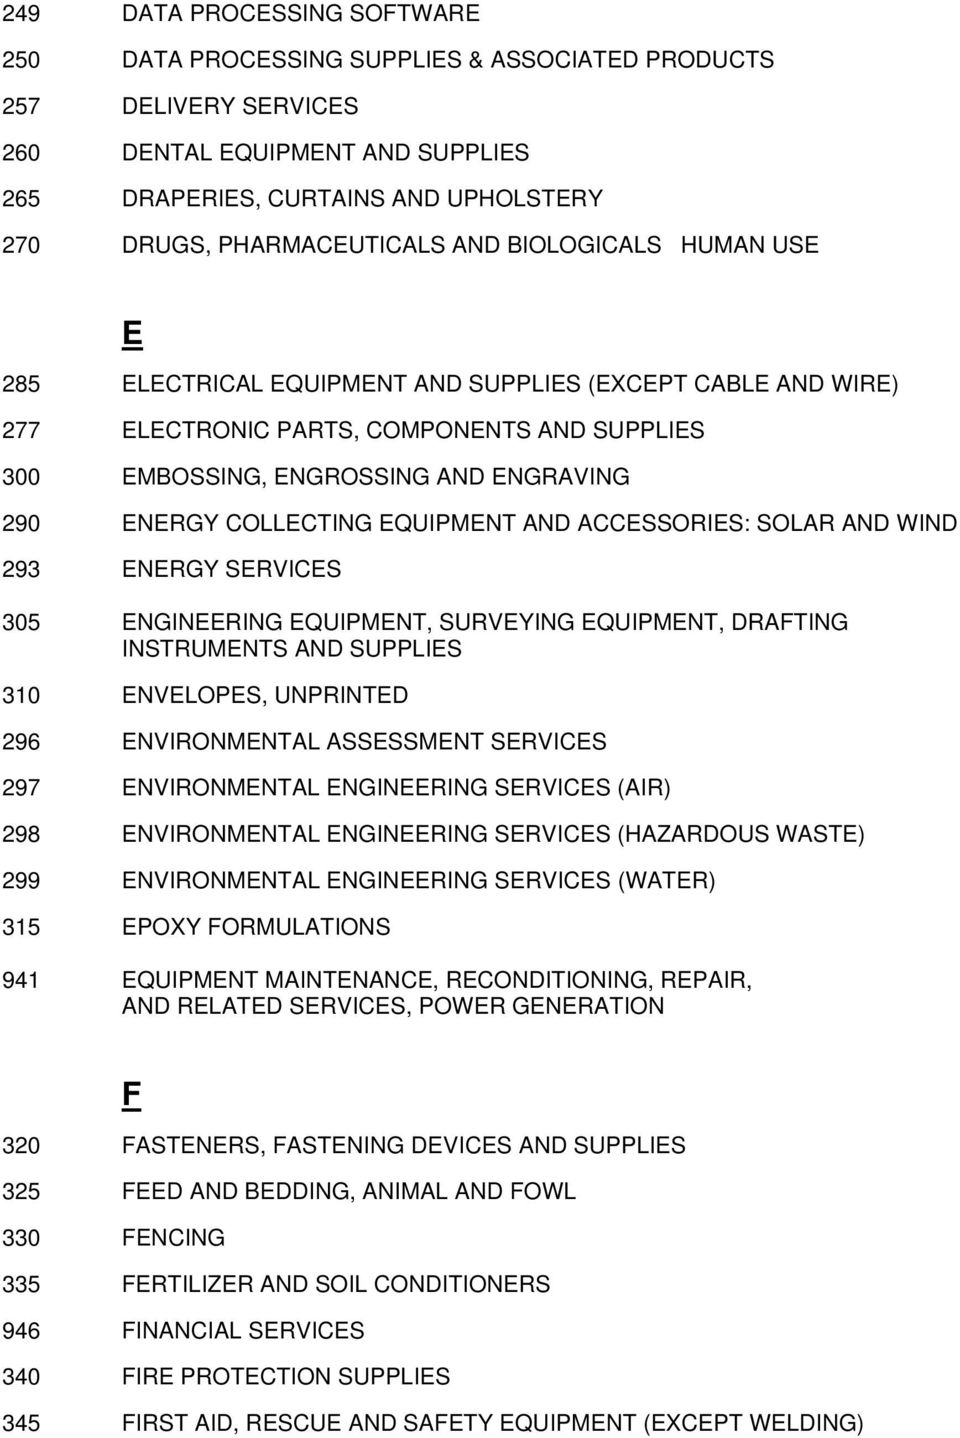 ENERGY COLLECTING EQUIPMENT AND ACCESSORIES: SOLAR AND WIND 293 ENERGY SERVICES 305 ENGINEERING EQUIPMENT, SURVEYING EQUIPMENT, DRAFTING INSTRUMENTS AND SUPPLIES 310 ENVELOPES, UNPRINTED 296